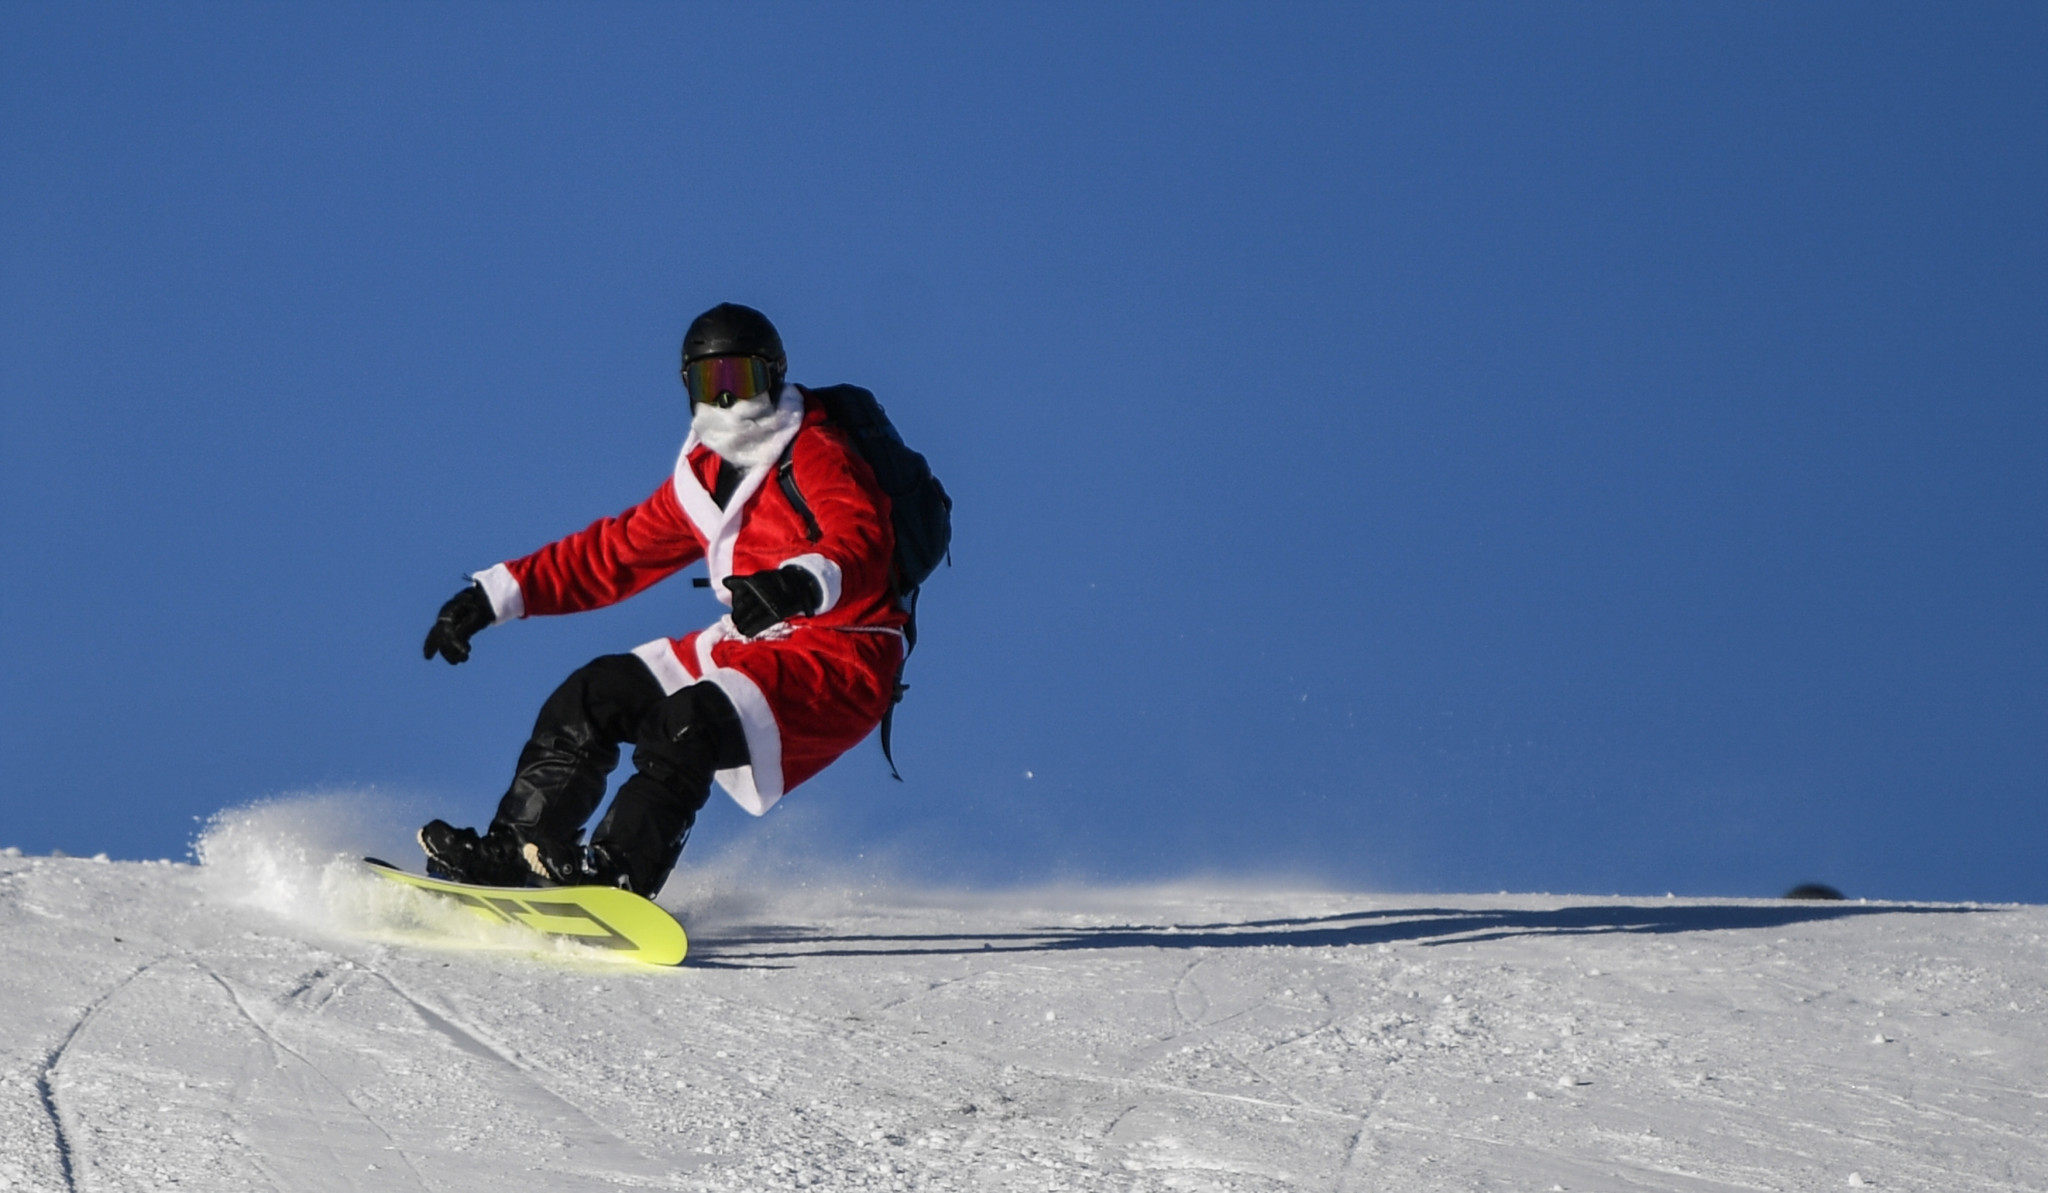 A snowboarder on the slopes in Feldberg ©Getty Images